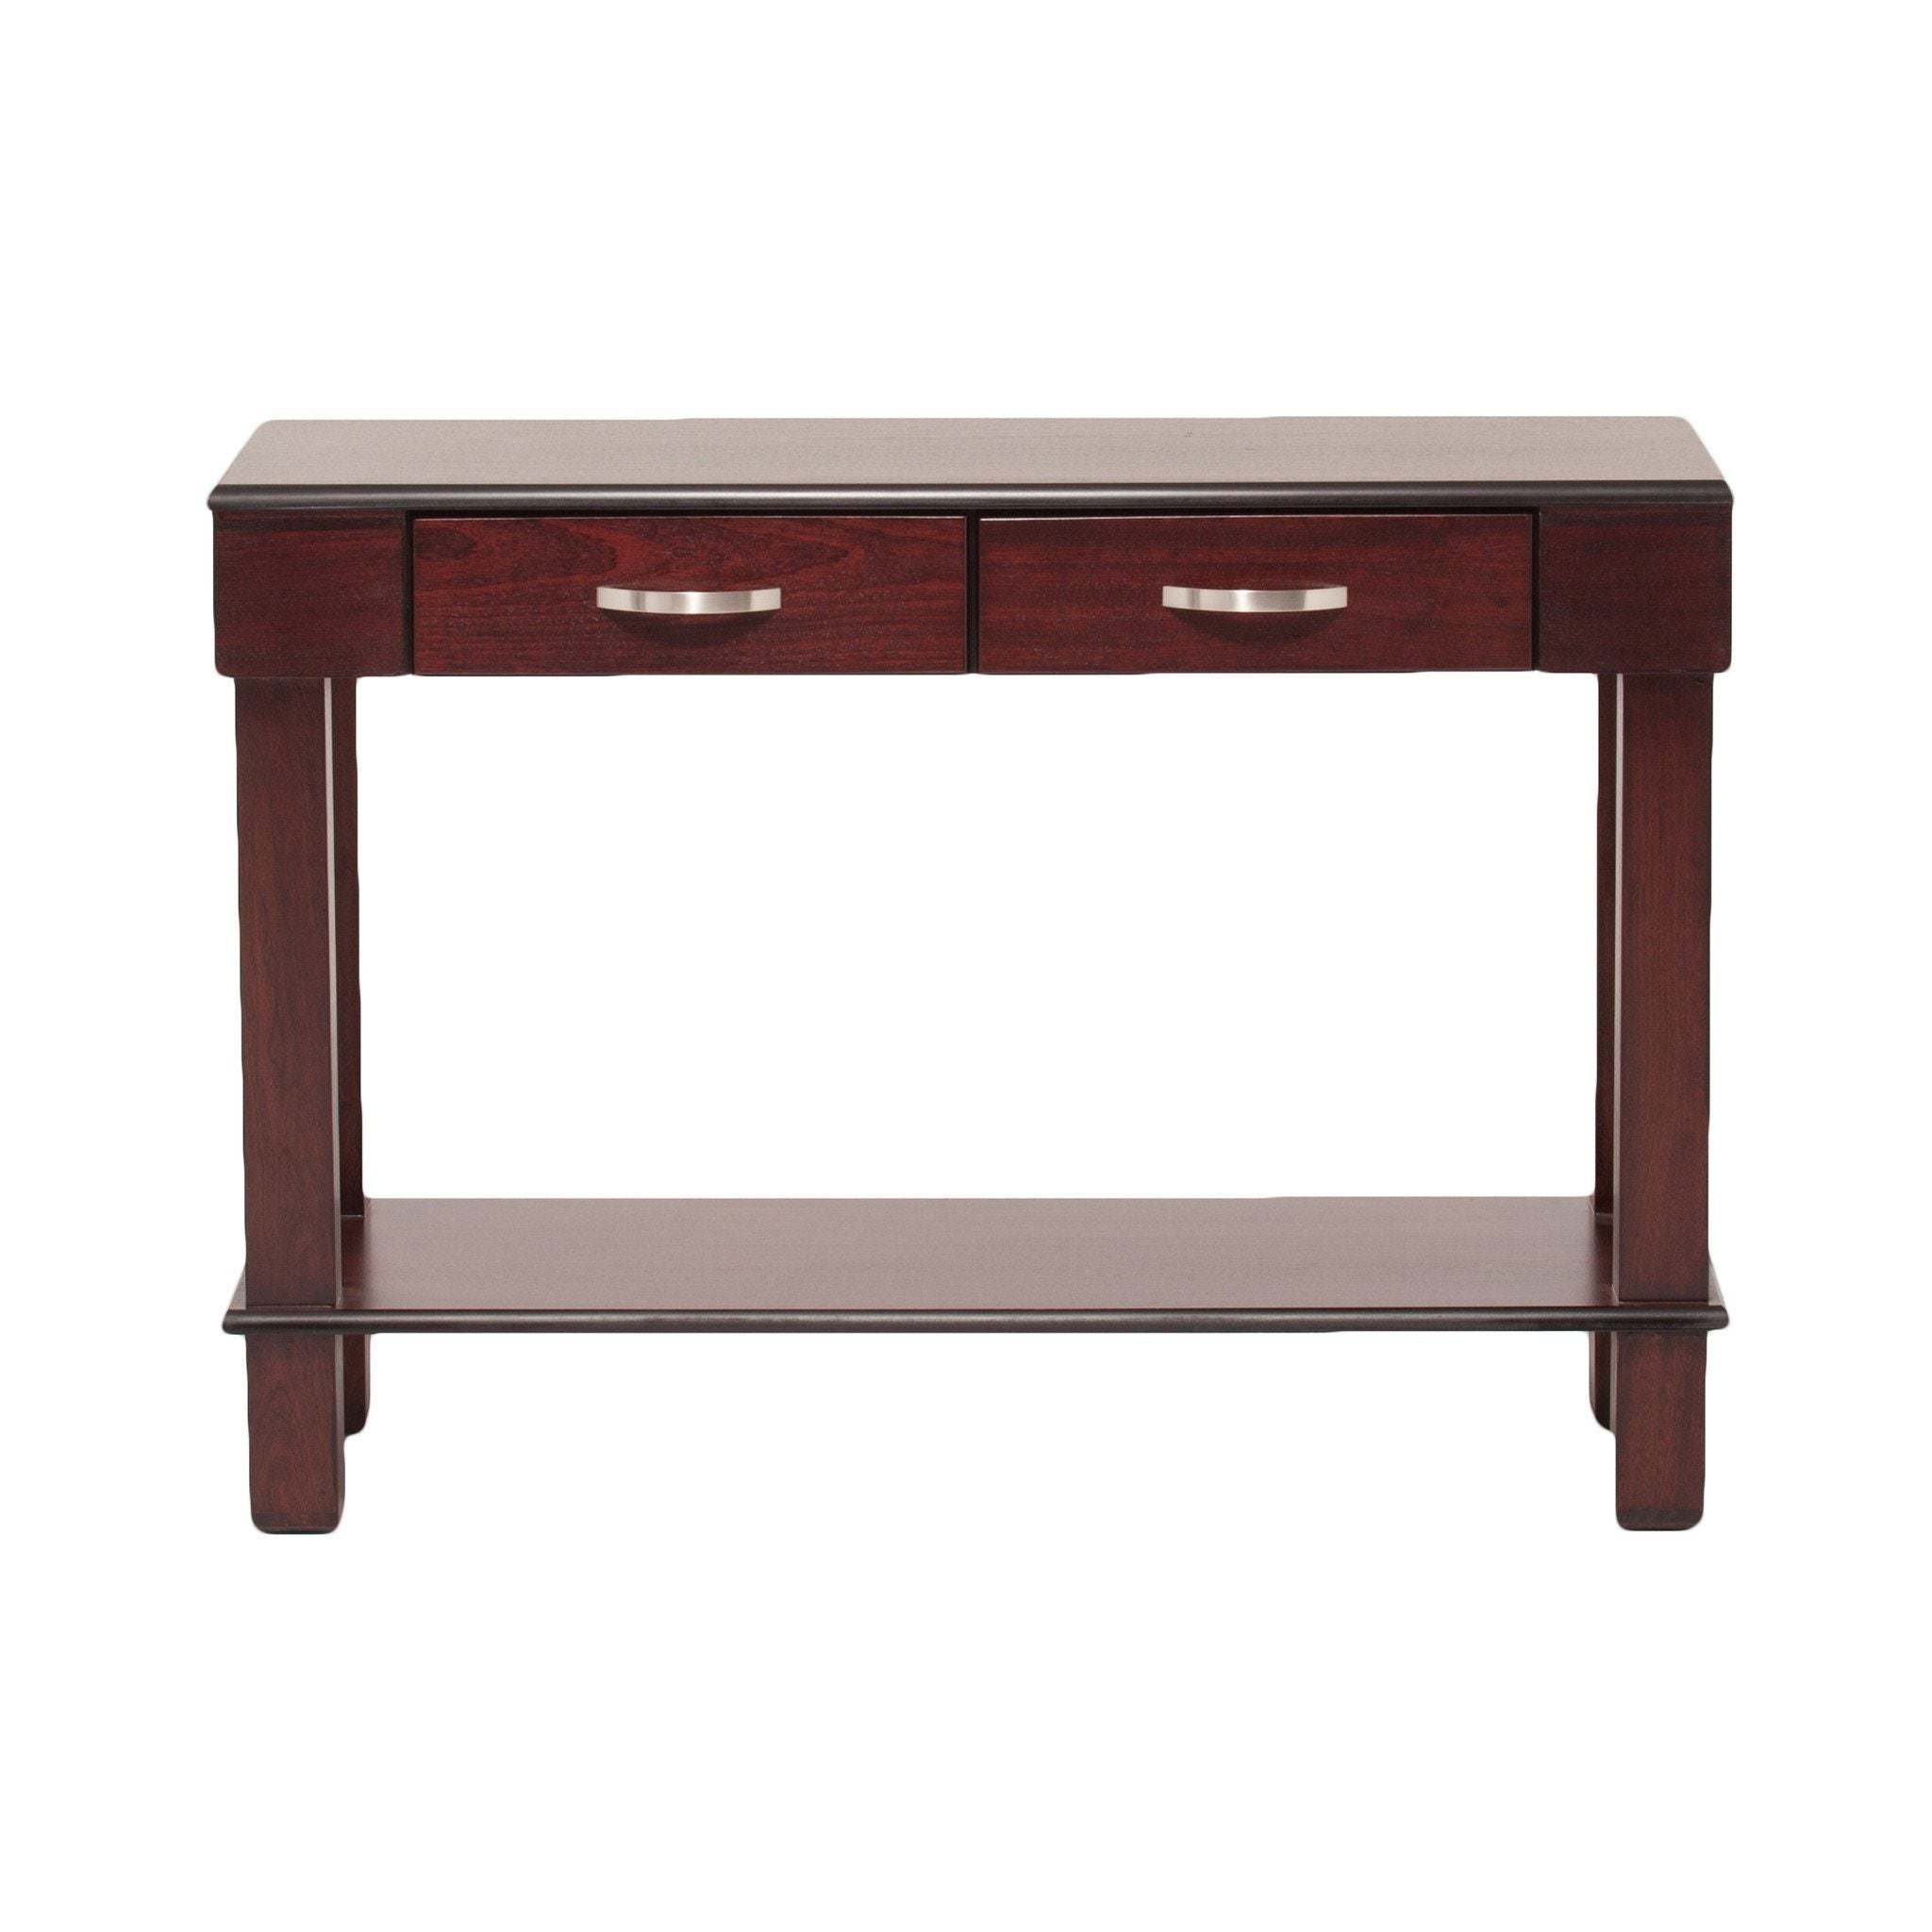 Urban Server with Drawers + Shelf - Walnut or Dark Mahogany